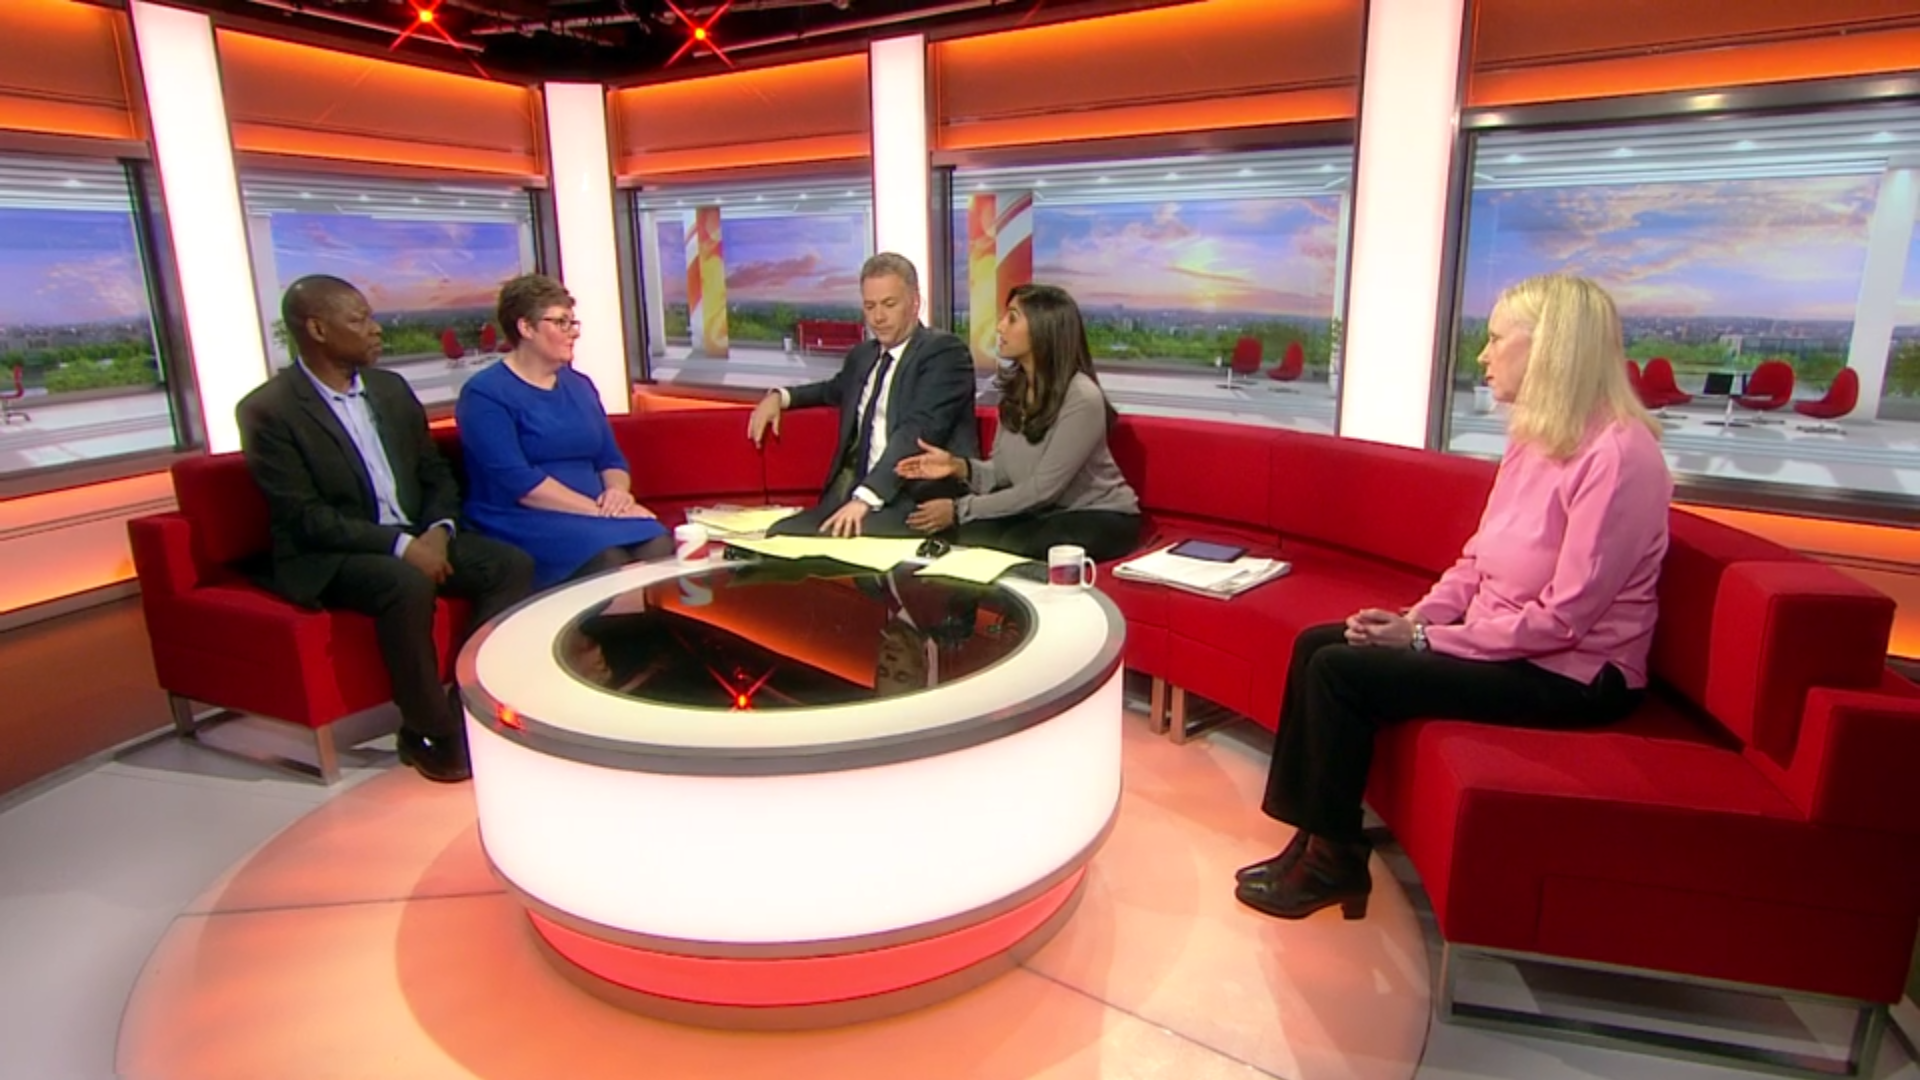 Mr_and_Mrs_Brown-Lartey_and_Liz_McInnes_MP_on_BBC_Breakfast_News.png